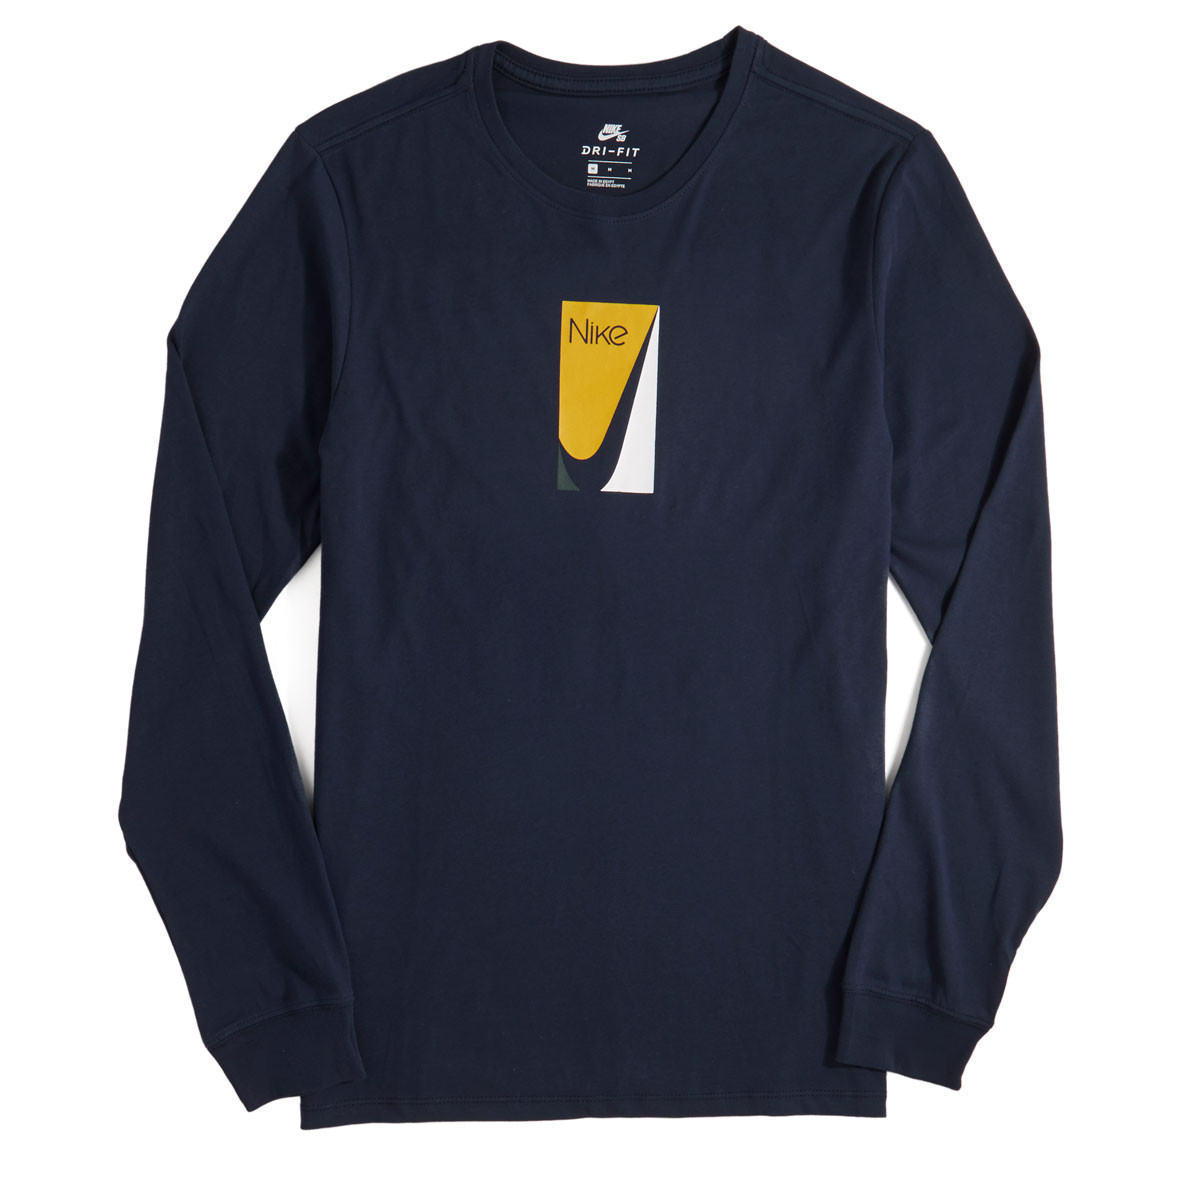 262199a53 Nike SB Color Block Long Sleeve T-Shirt - Obsidian